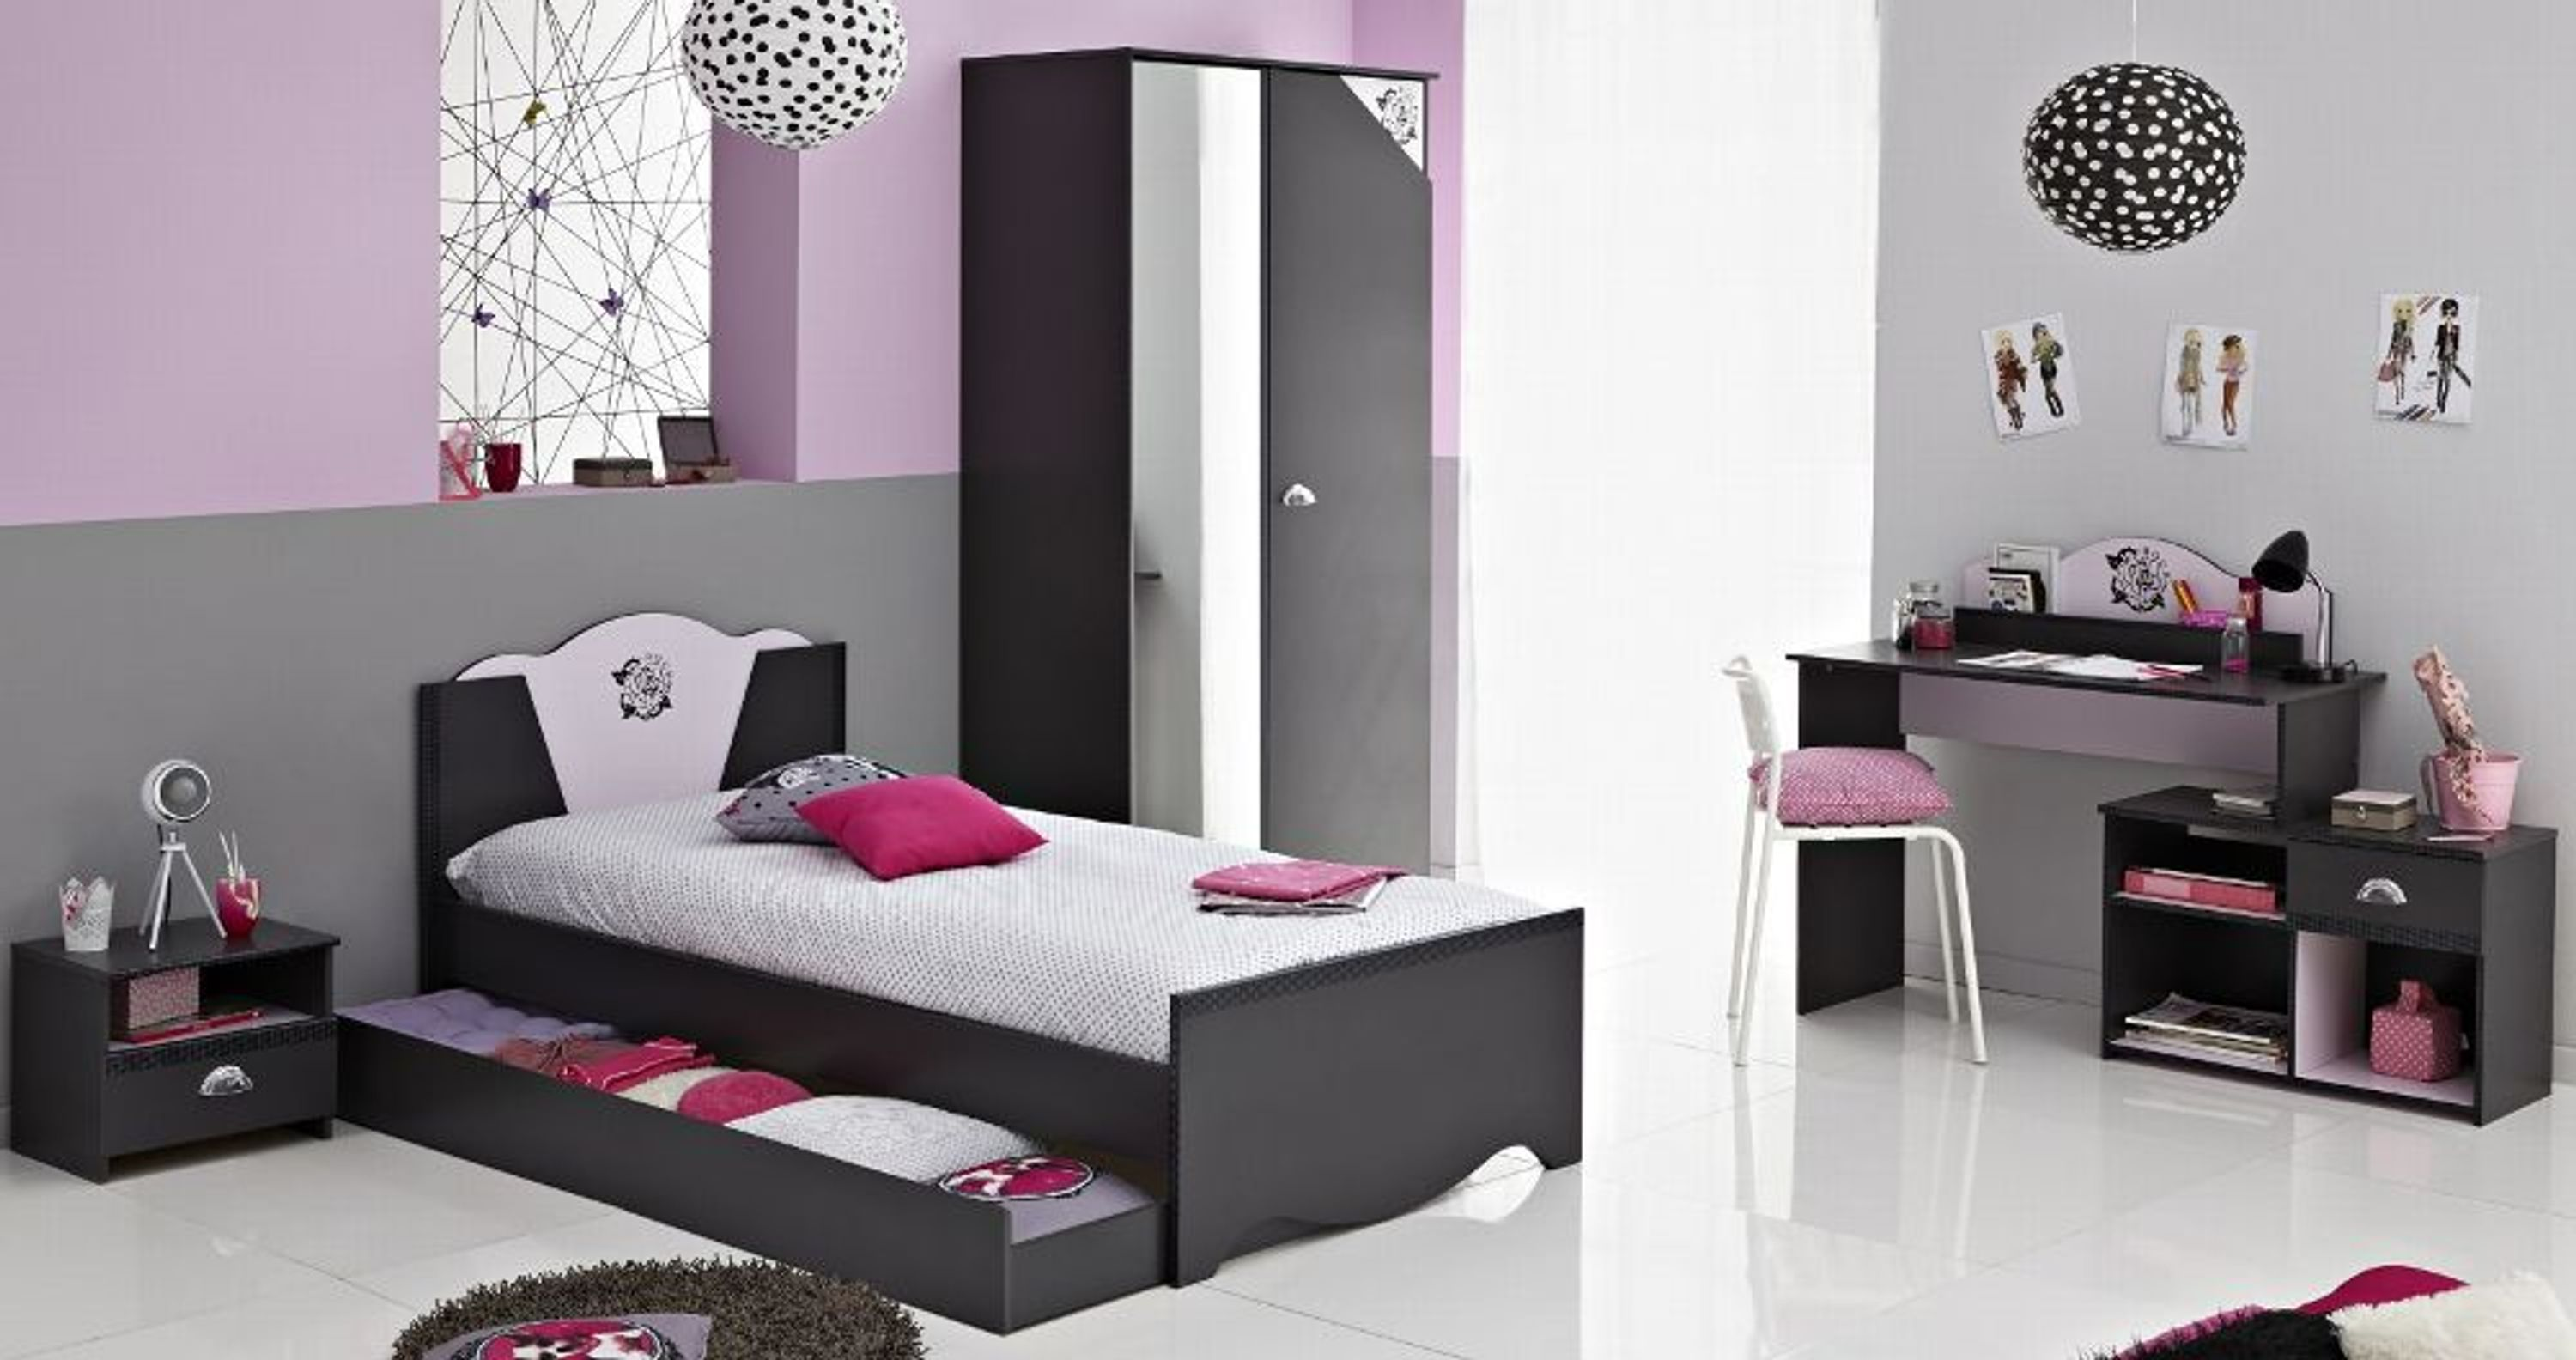 kinderzimmer set laika grau rosa 5 teilig kaufen bei. Black Bedroom Furniture Sets. Home Design Ideas